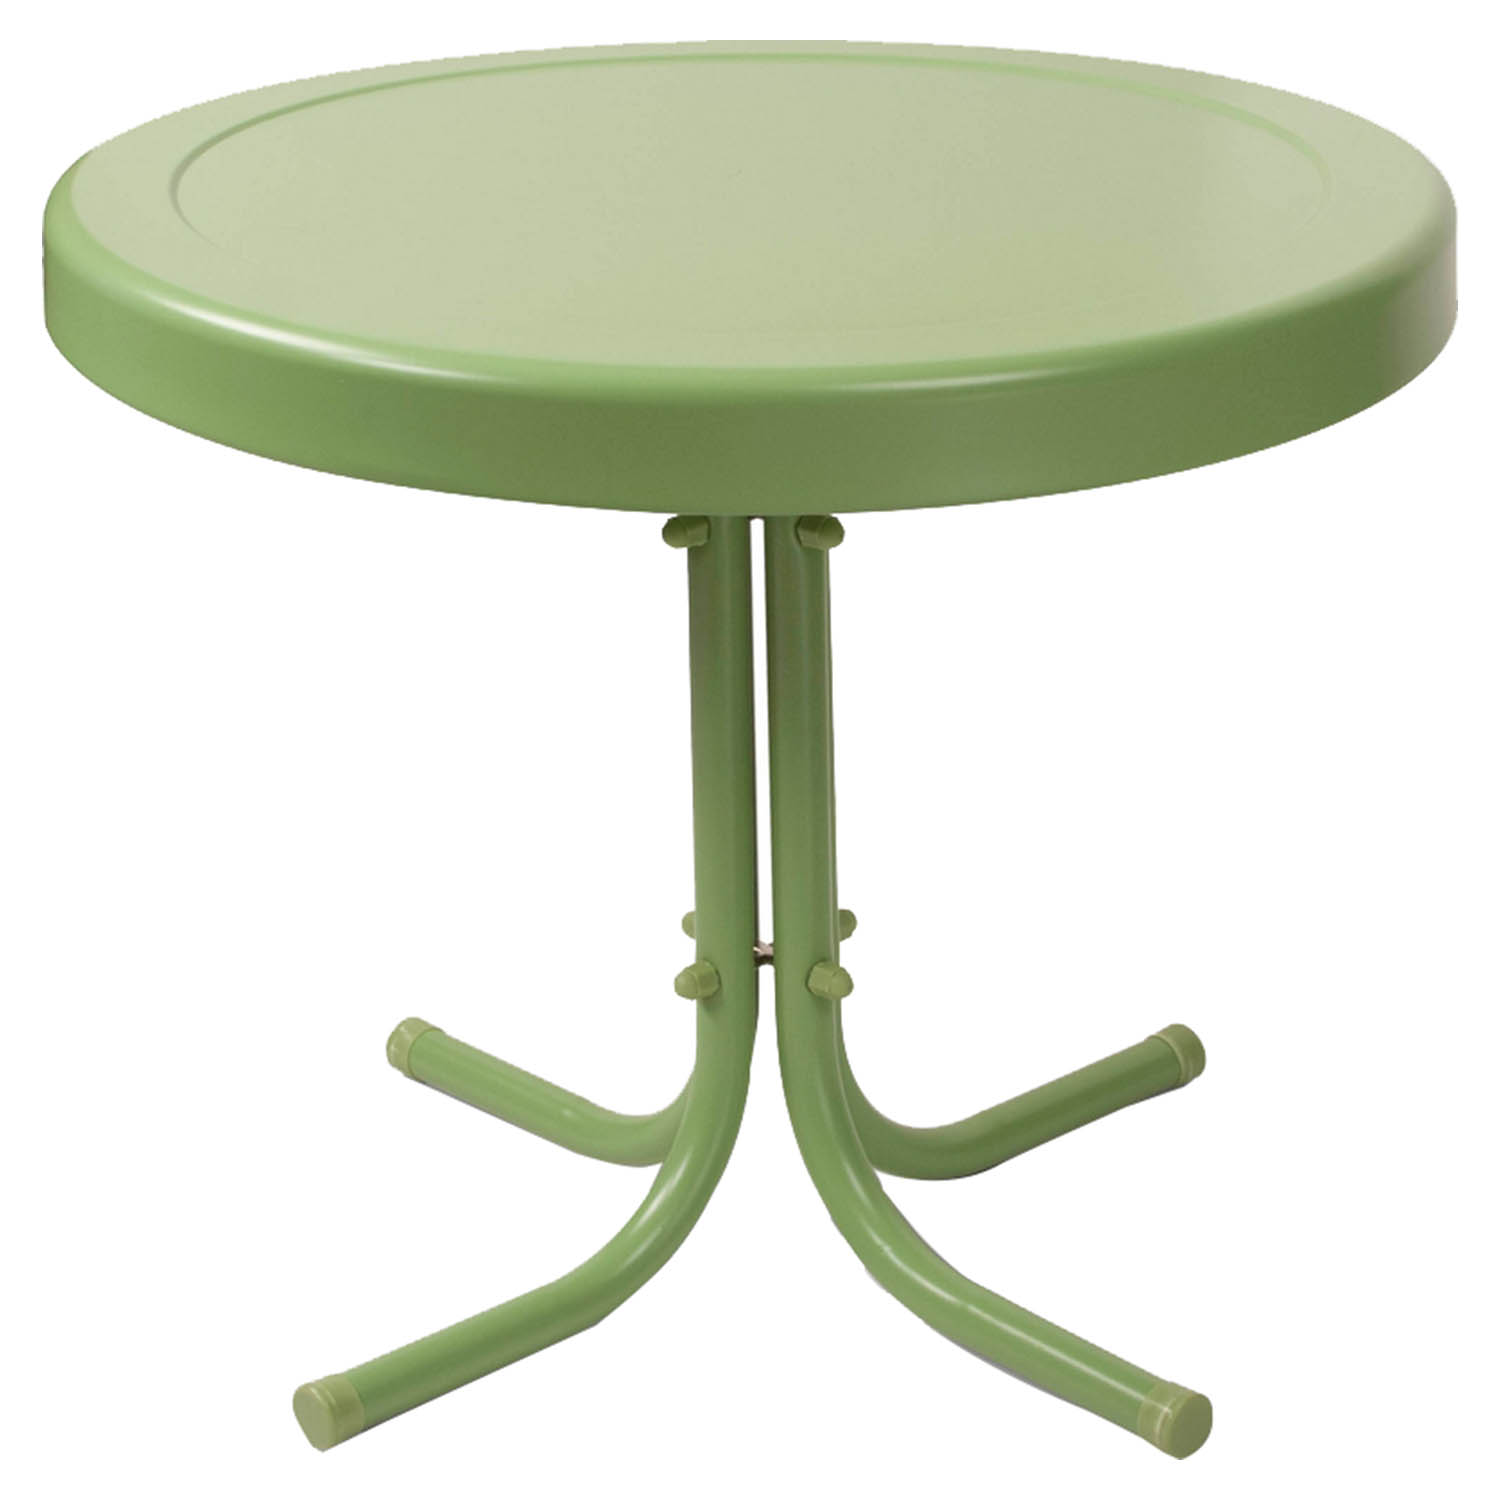 Retro Metal Side Table - Oasis Green - CROS-CO1011A-GR